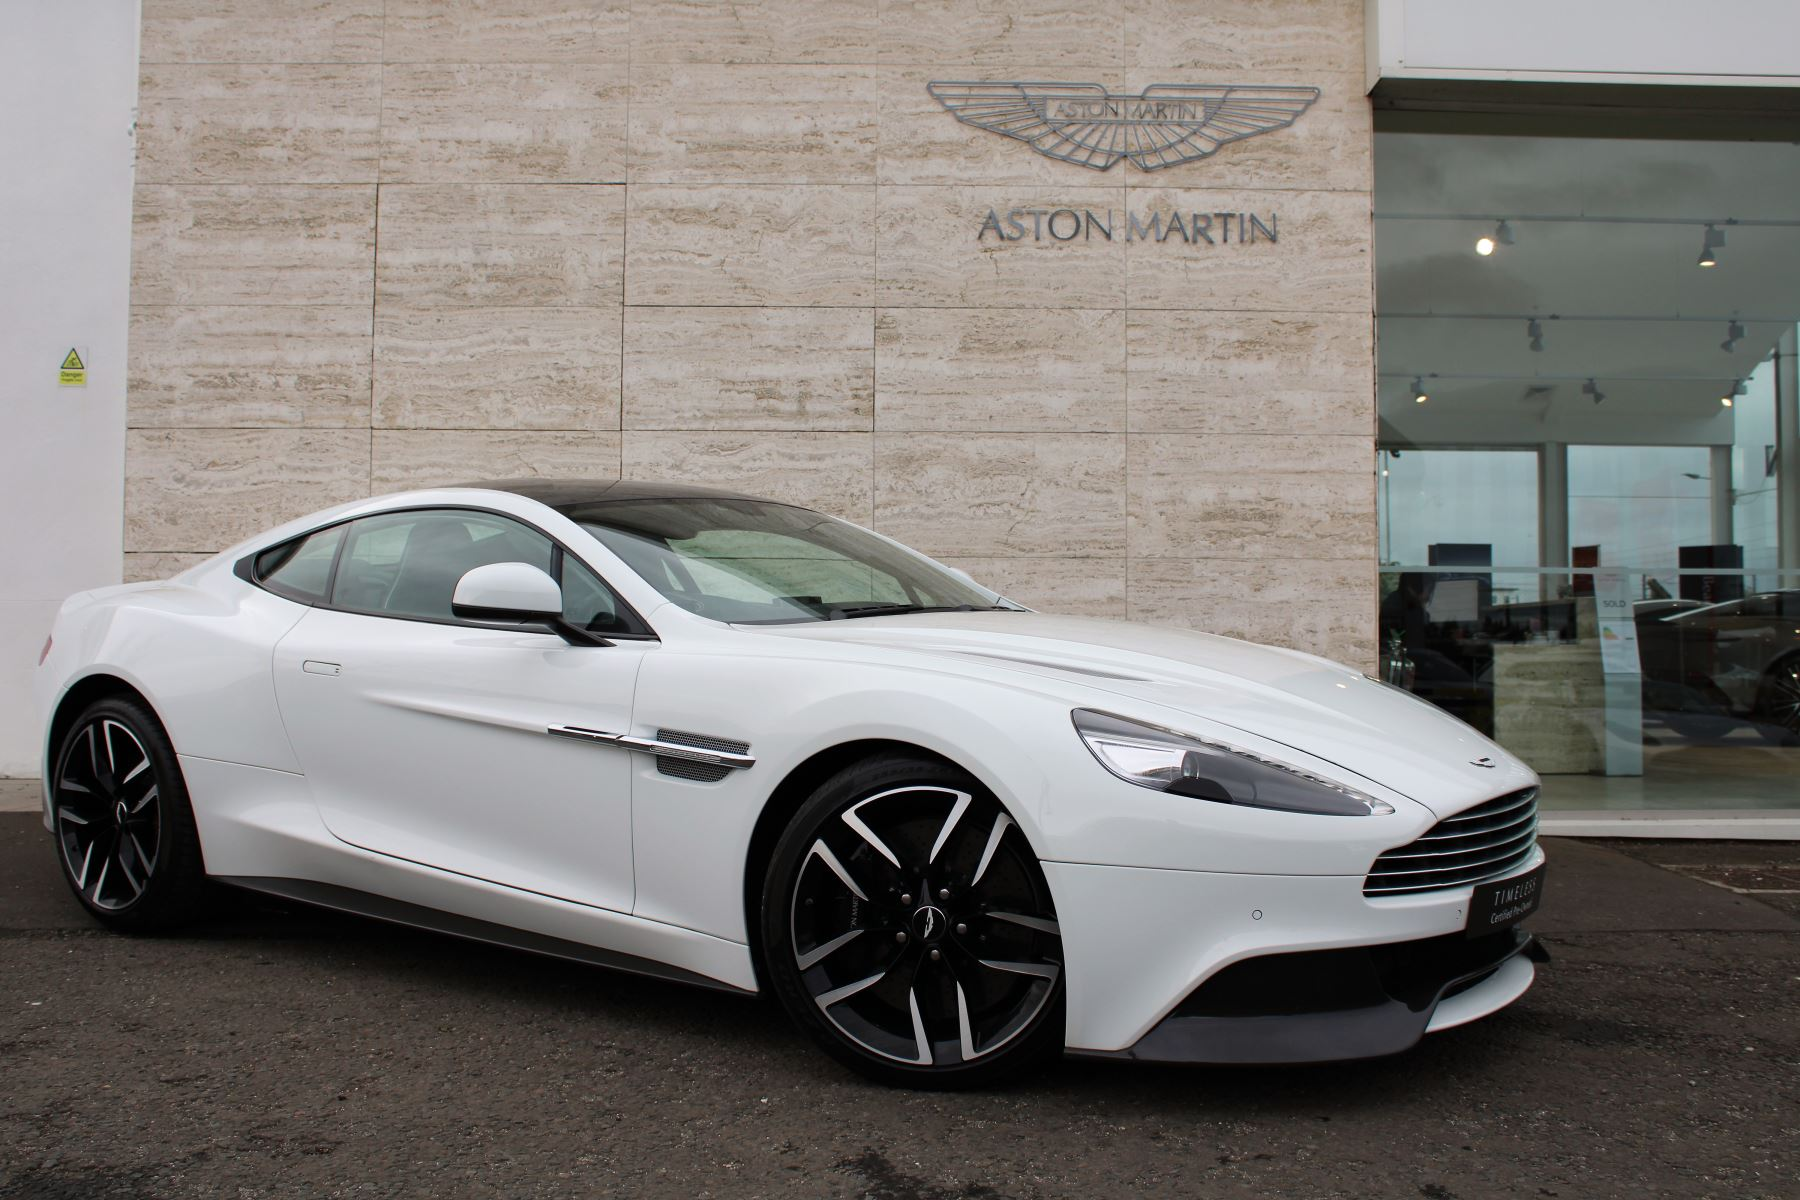 Aston Martin Vanquish V12 [568] 2+2 2dr Touchtronic image 3